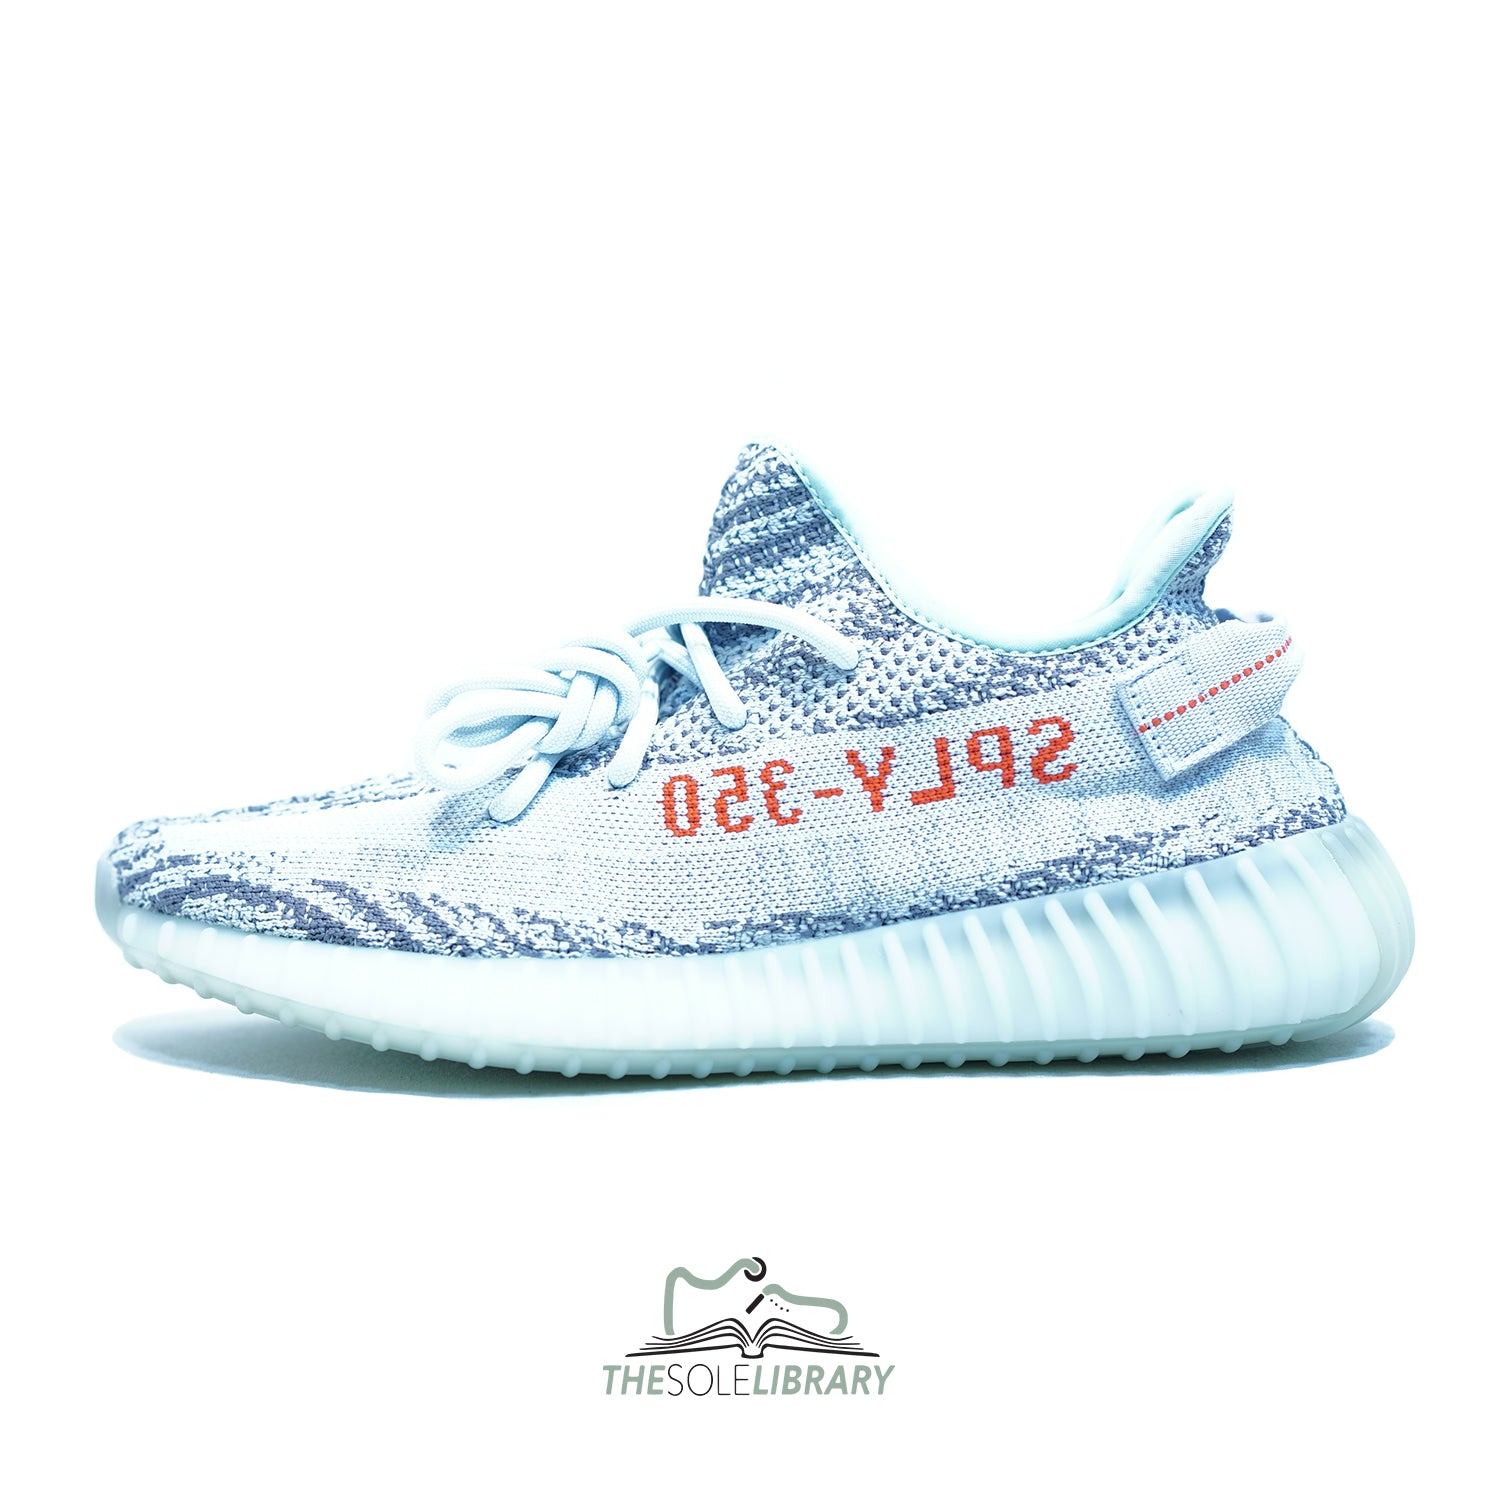 e6860f088d90a Adidas Yeezy Boost 350 V2  Blue Tint  - The Sole Library